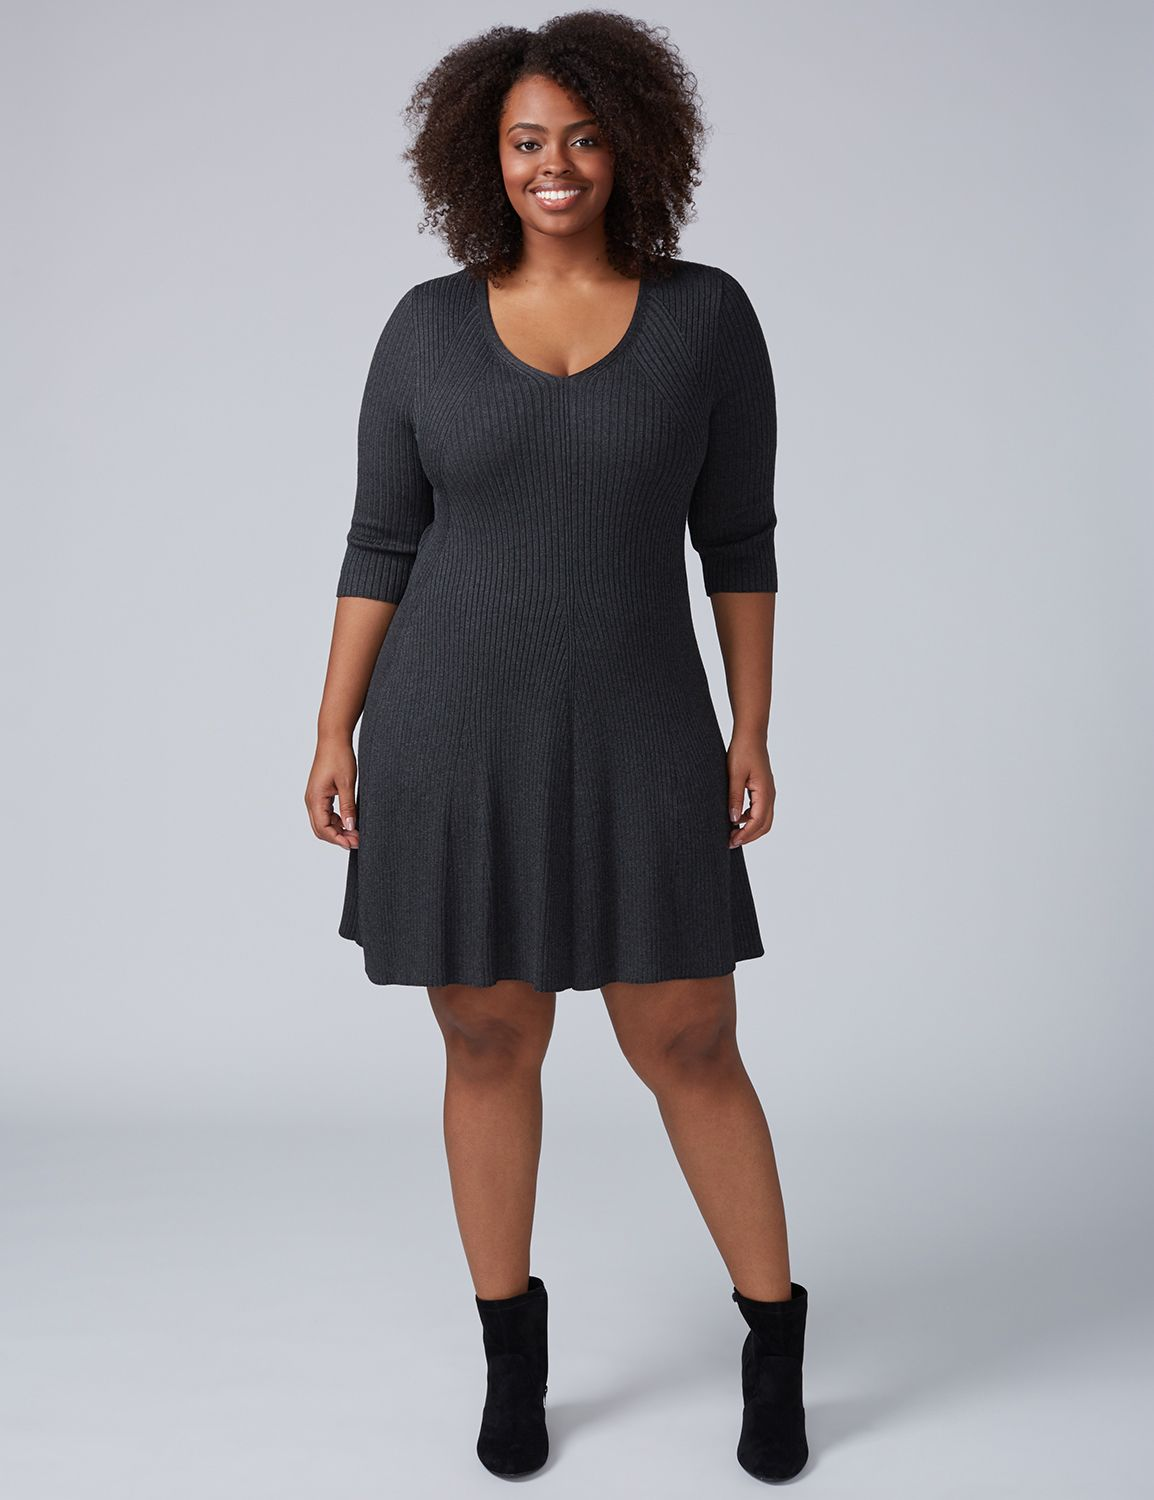 Lane Bryant Women's 3 / 4 - Sleeve Fit & Flare Sweater Dress 22 / 24 Dark Heather Grey